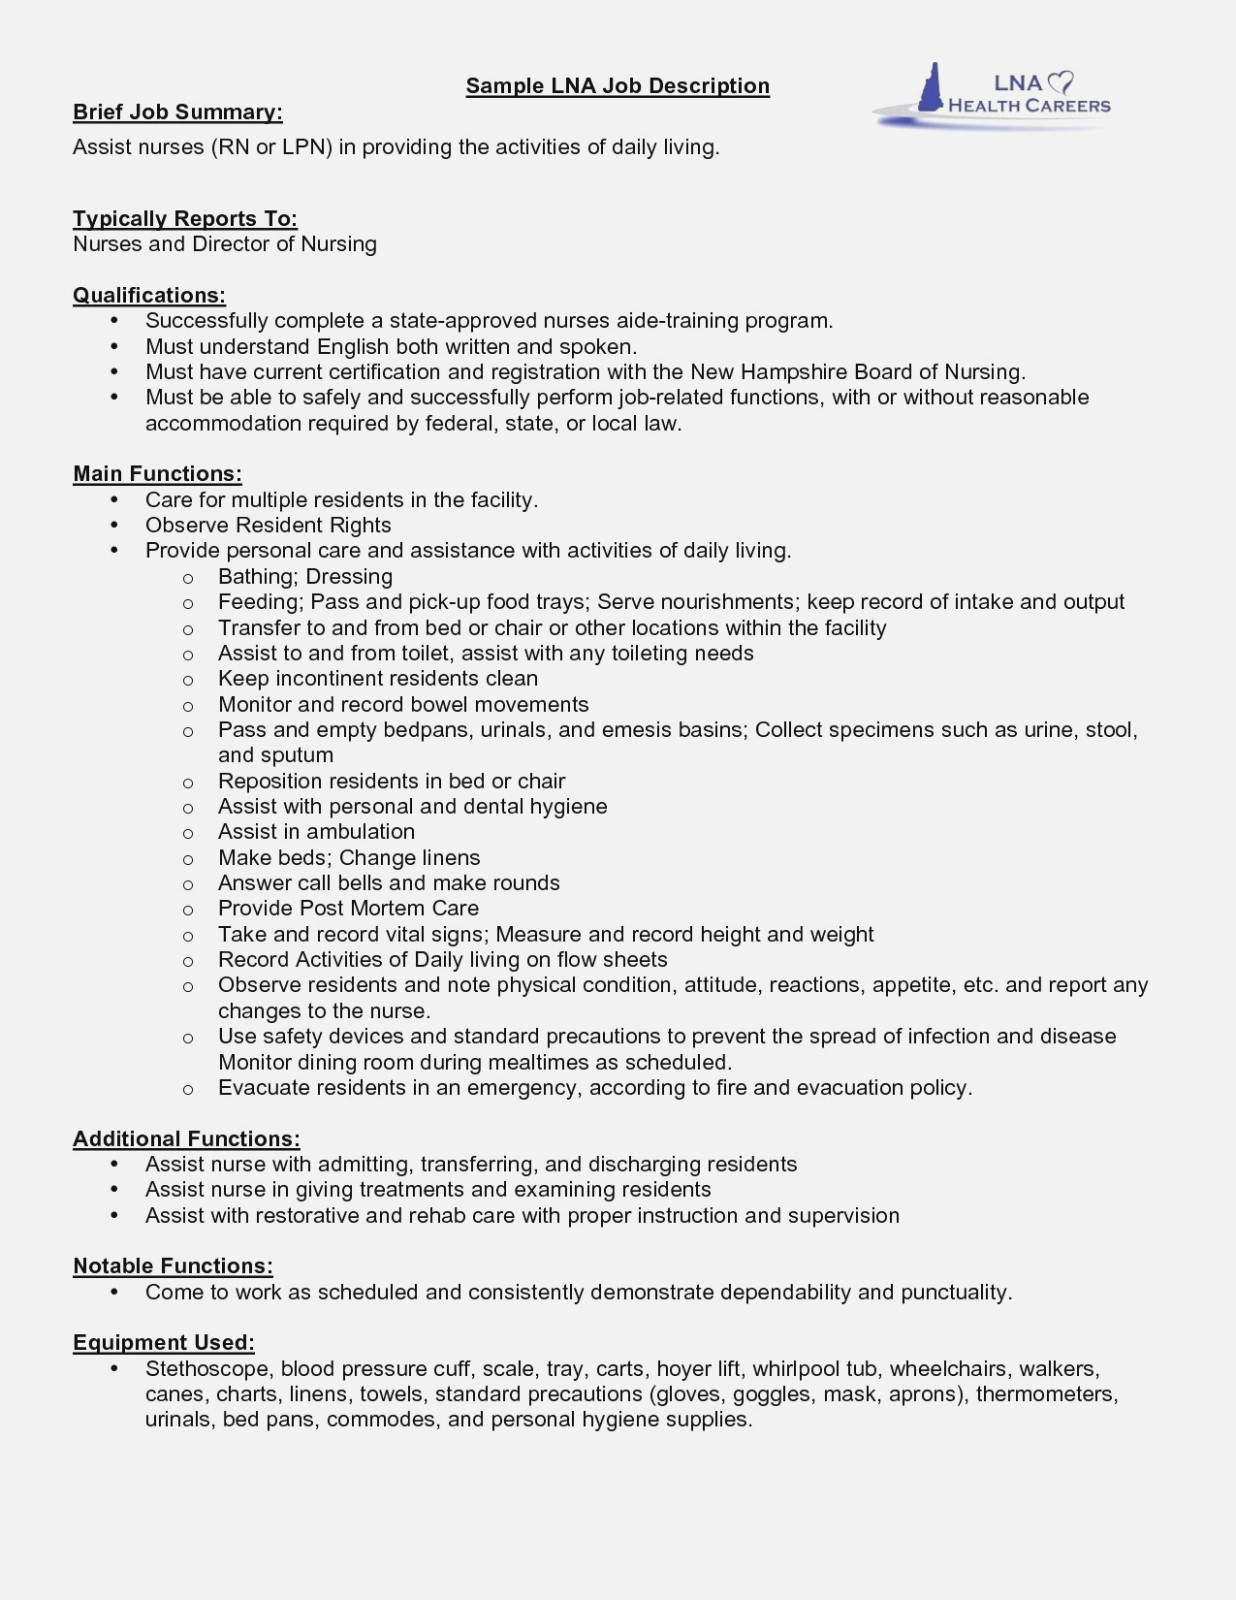 Federal Resume Template Federal Resume Guide Sakuranbogumi Com Federal Resume Guide federal resume template|wikiresume.com